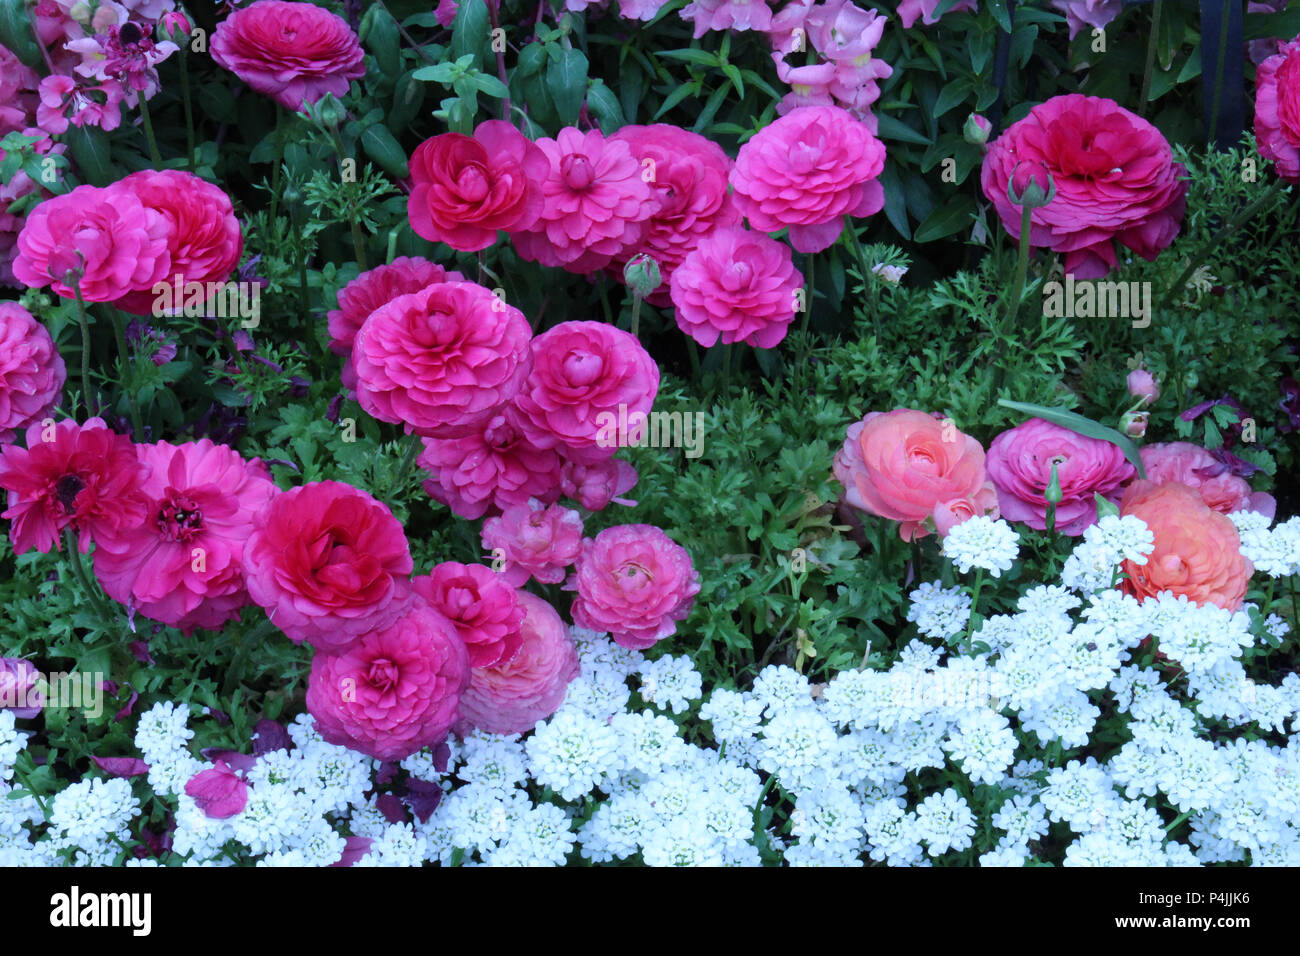 A flower bed filled with blooming pink and peach Ranunculus, pink Snapdragons and white Candytuft flowers in full bloom in the spring Stock Photo